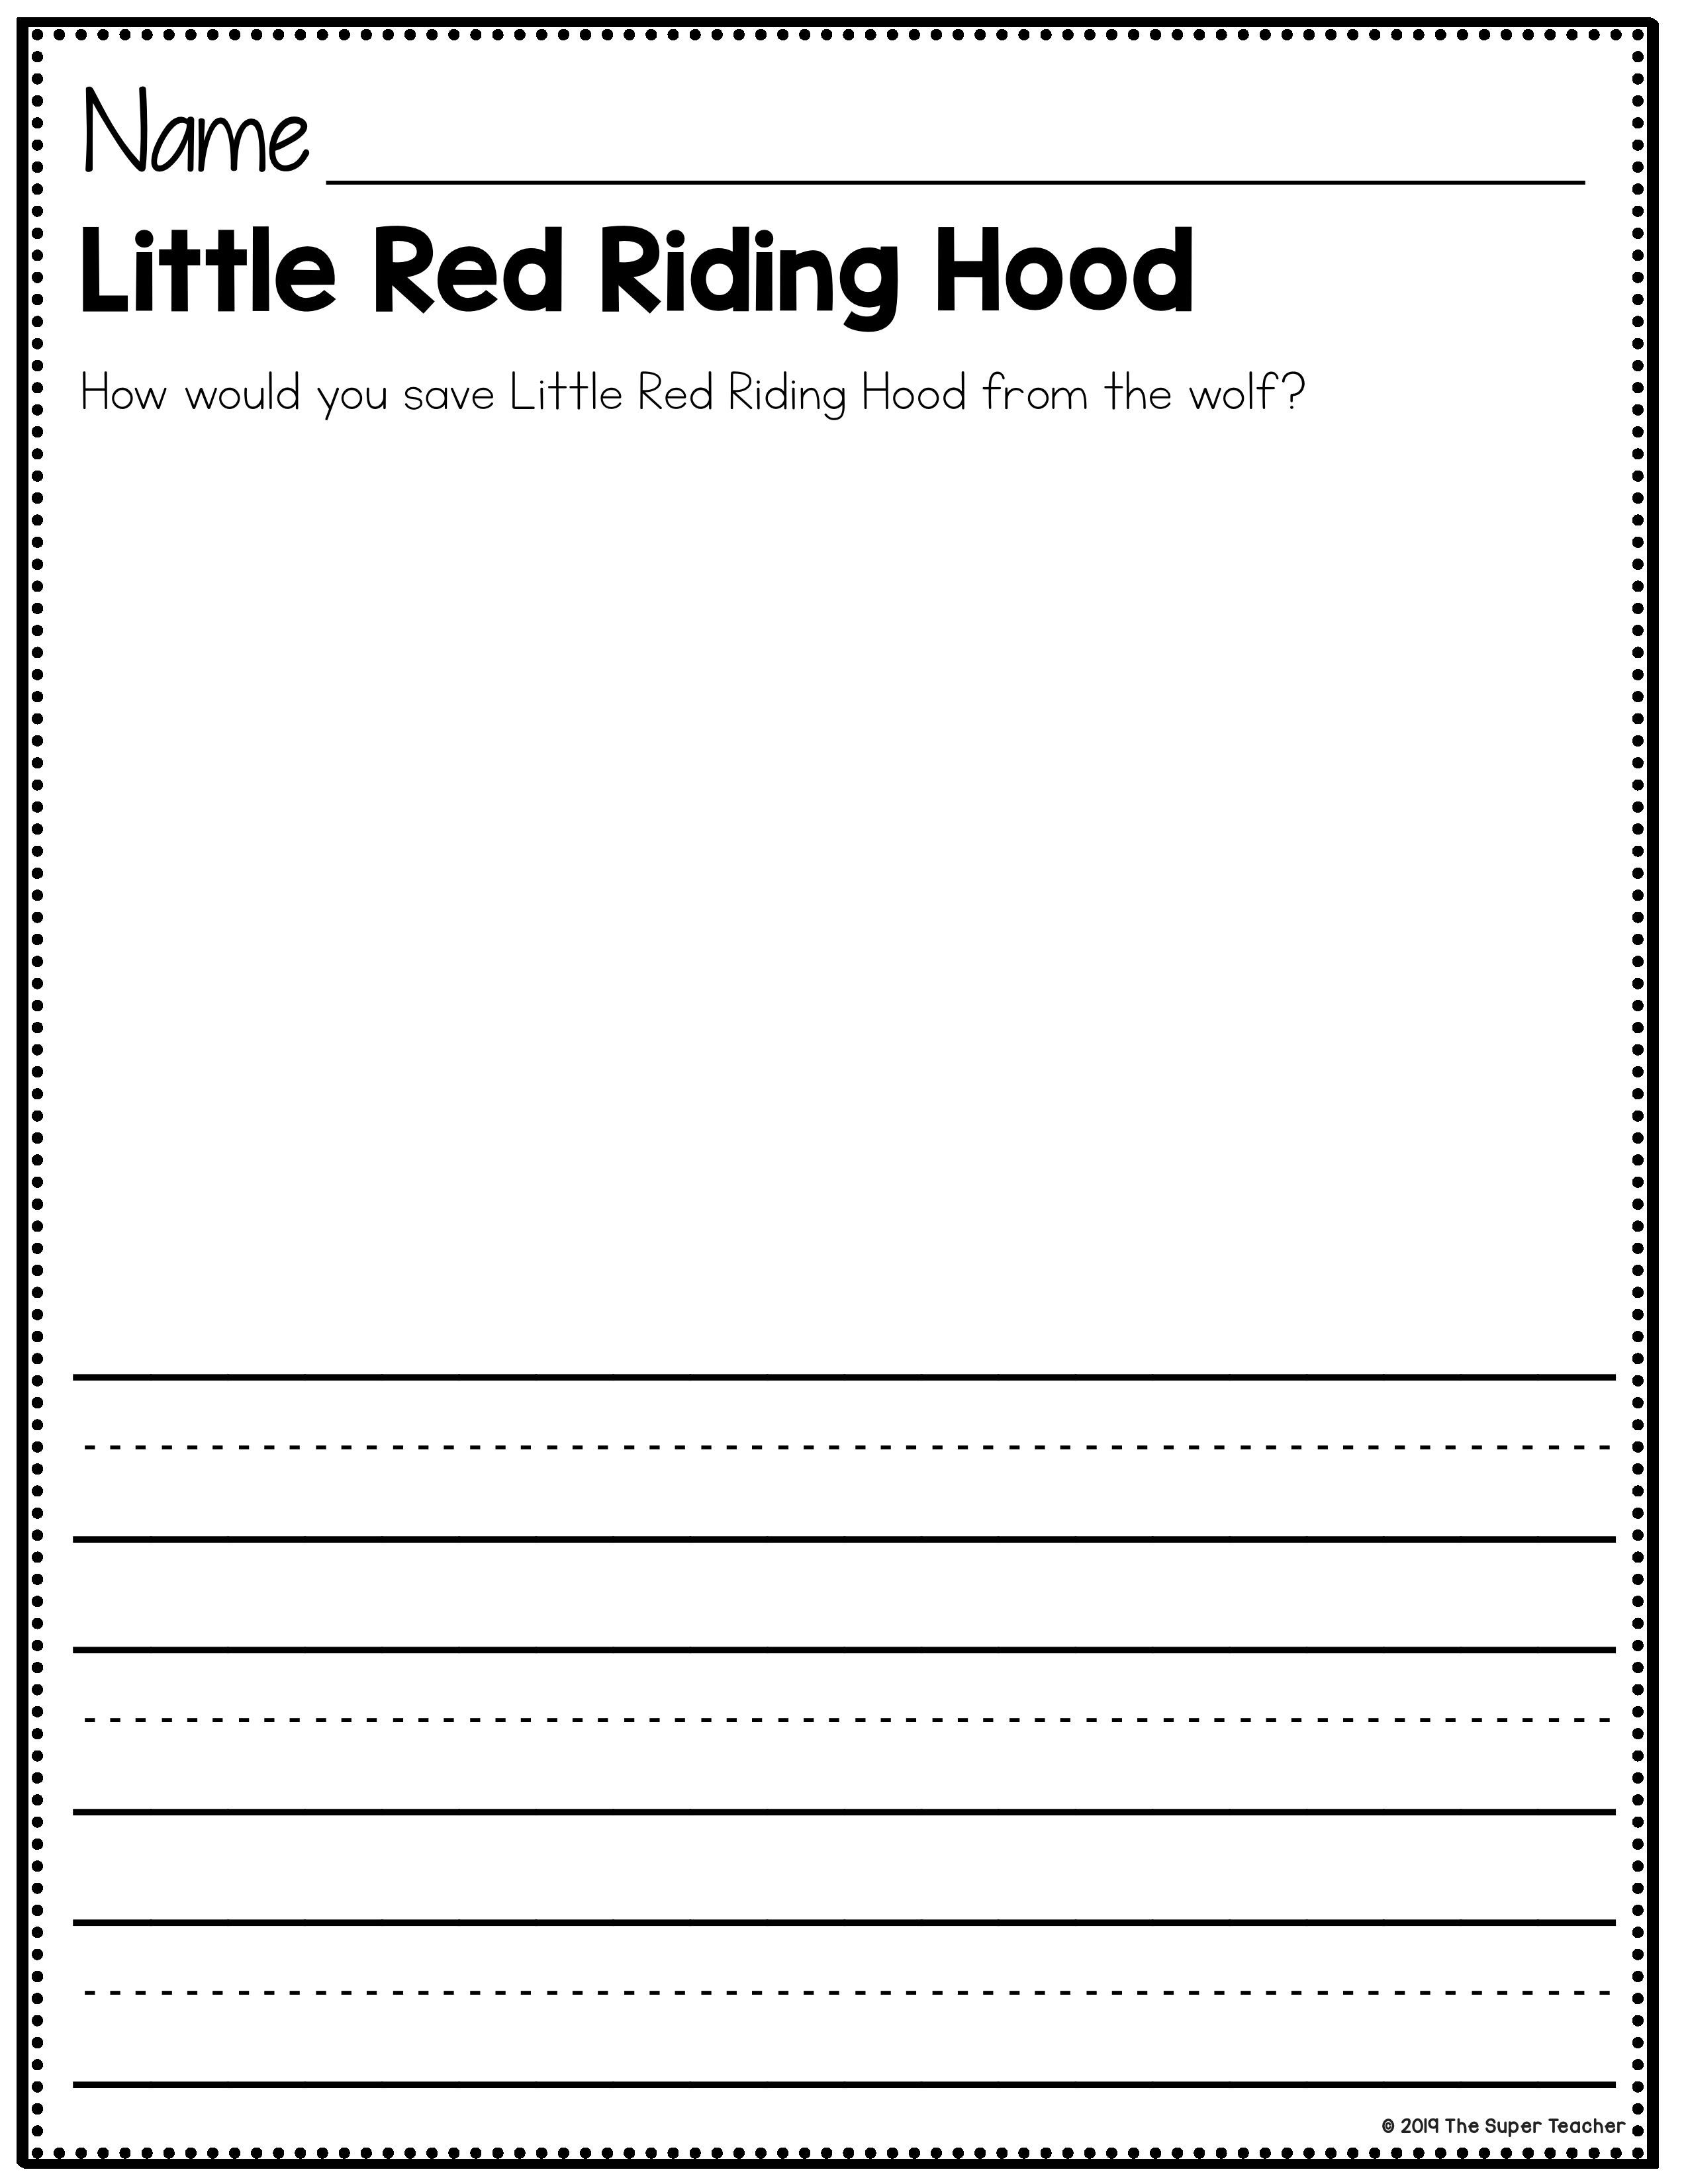 These Little Red Riding Hood Printables Are Awesome For Teaching Story Elements Like Character Sett Teaching Story Elements Story Retell Red Riding Hood Story